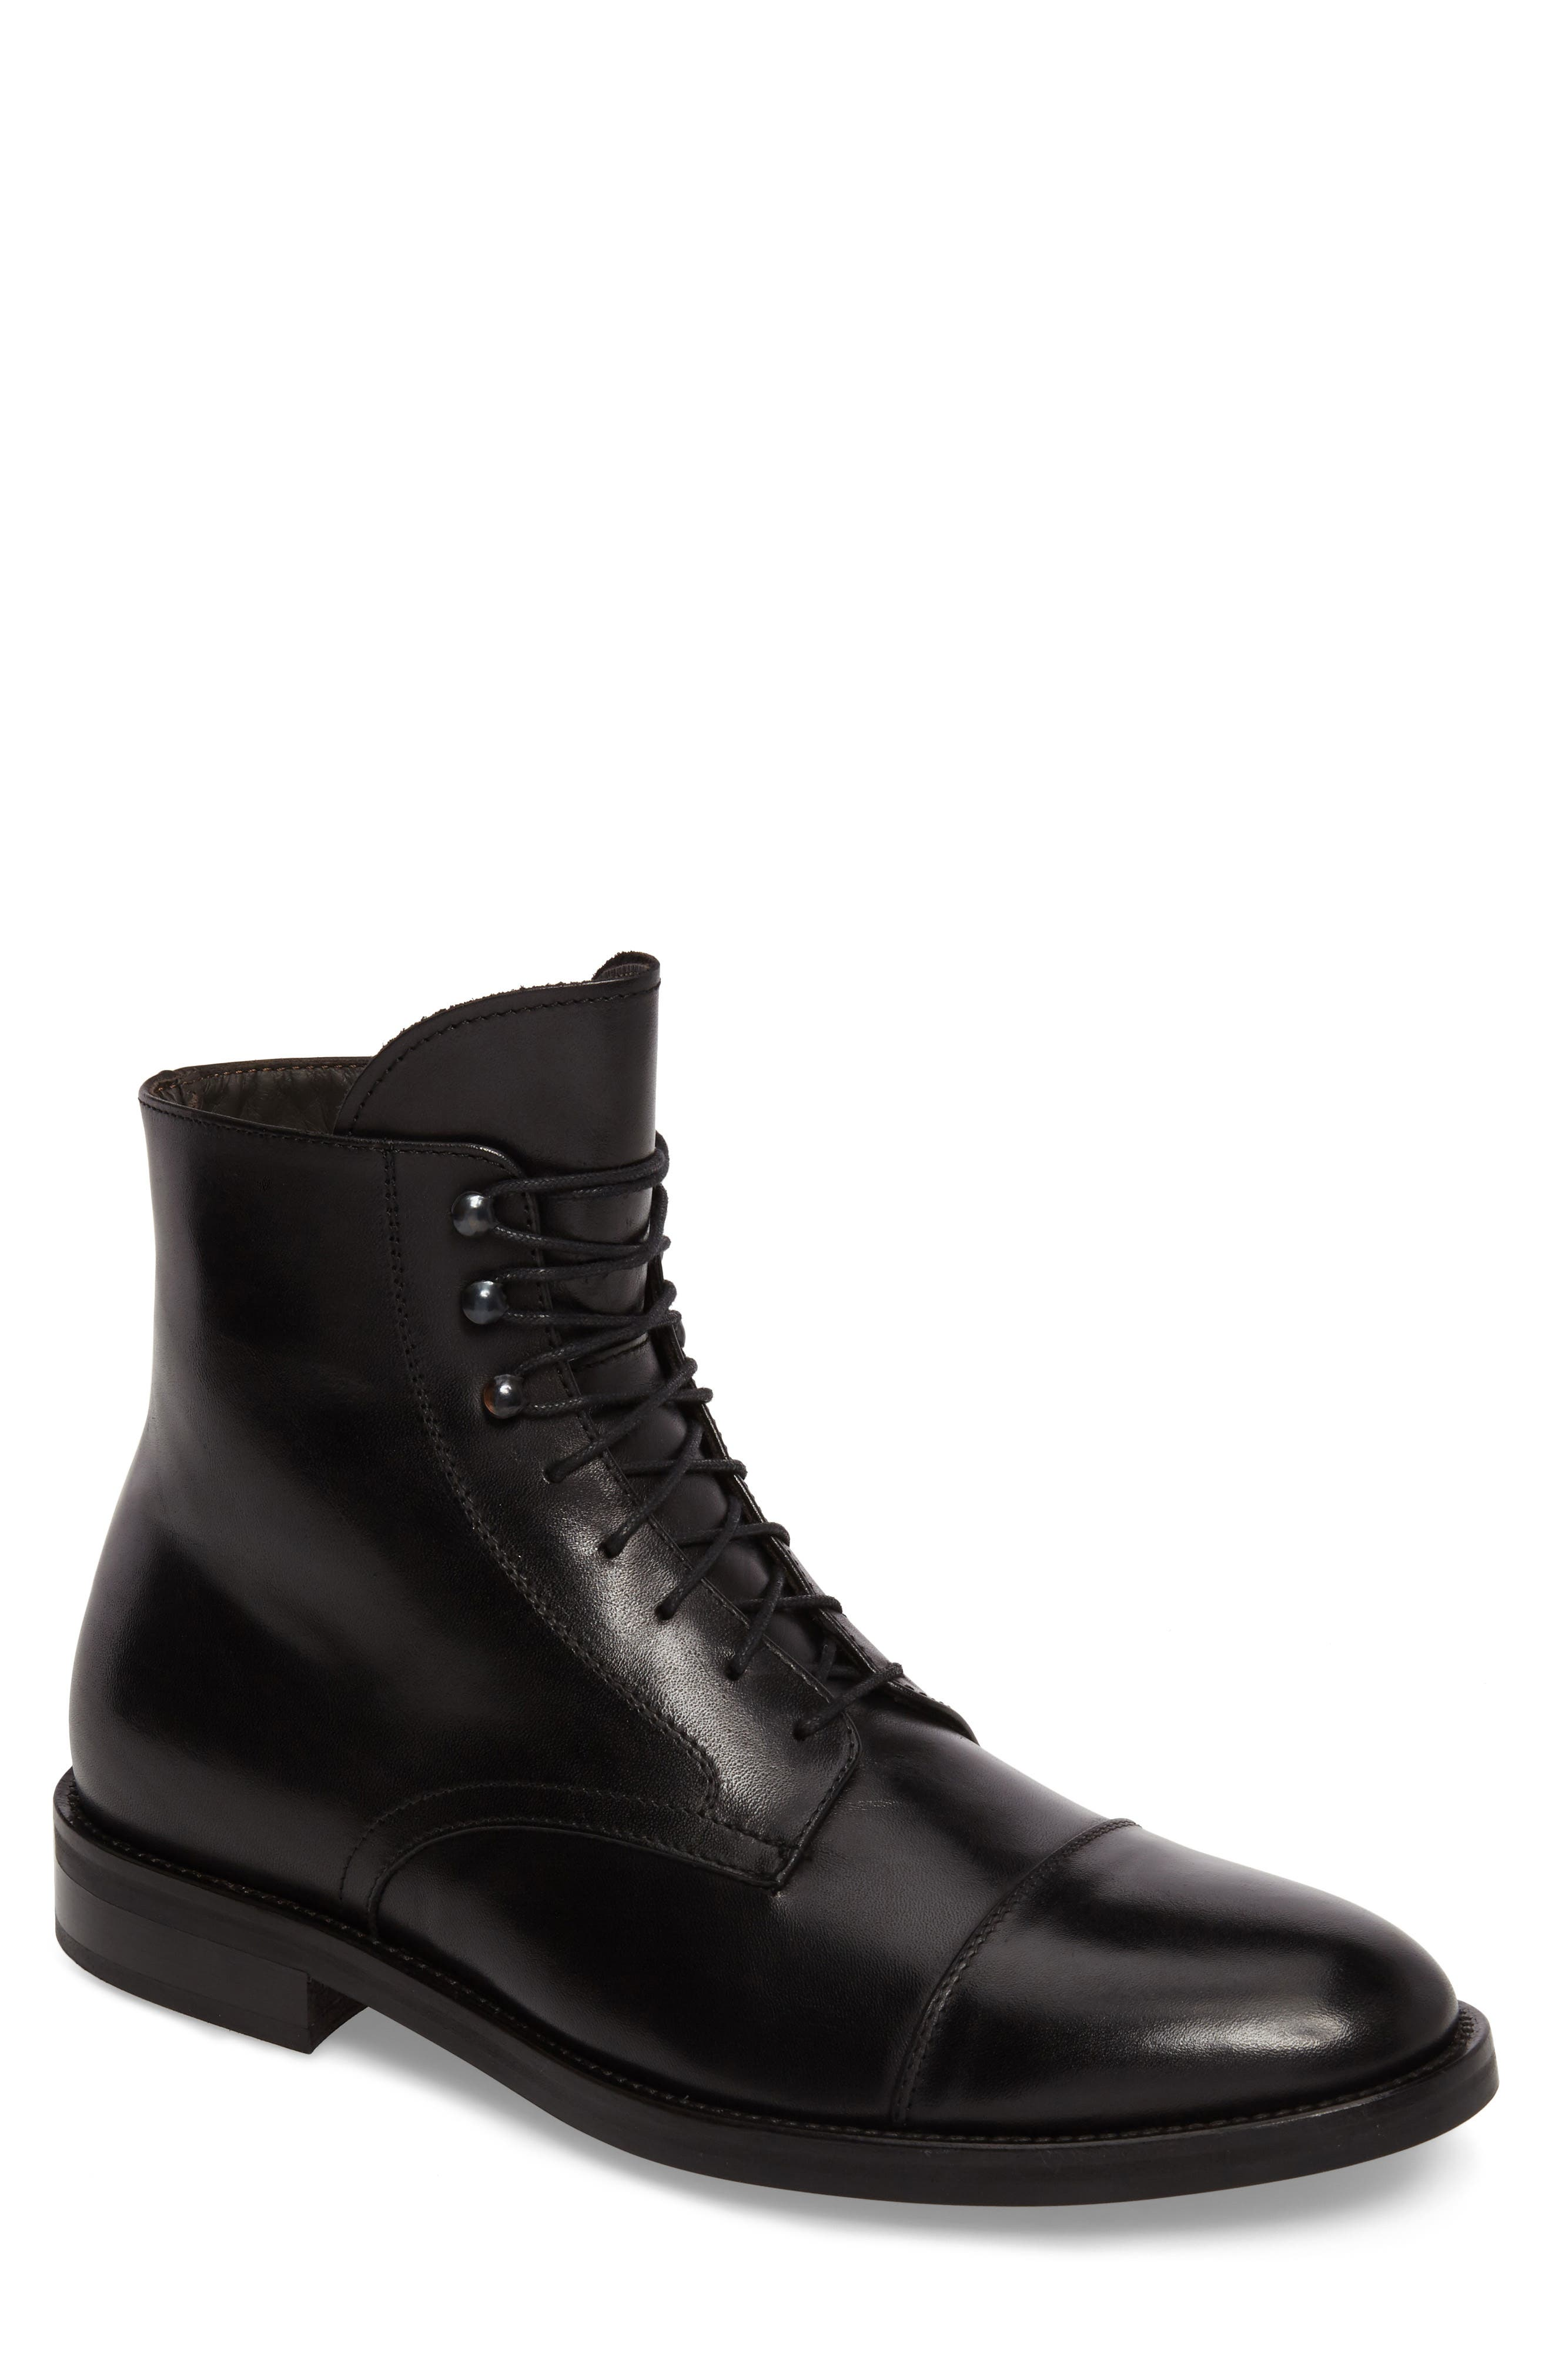 Henri Cap Toe Boot,                             Main thumbnail 1, color,                             BLACK